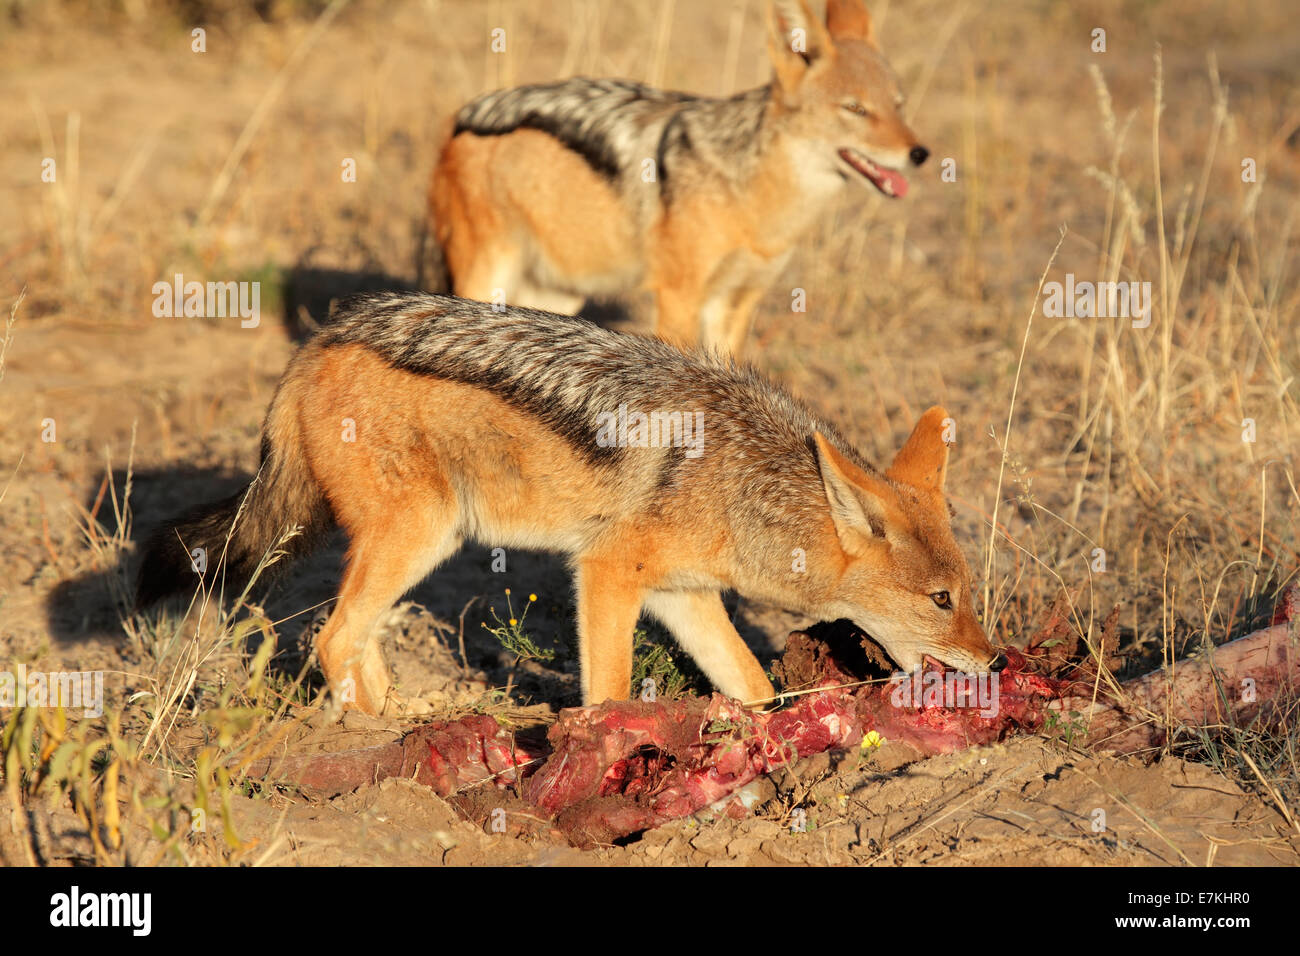 Black-backed Jackals (Canis mesomelas) scavenging on a carcass, South Africa - Stock Image